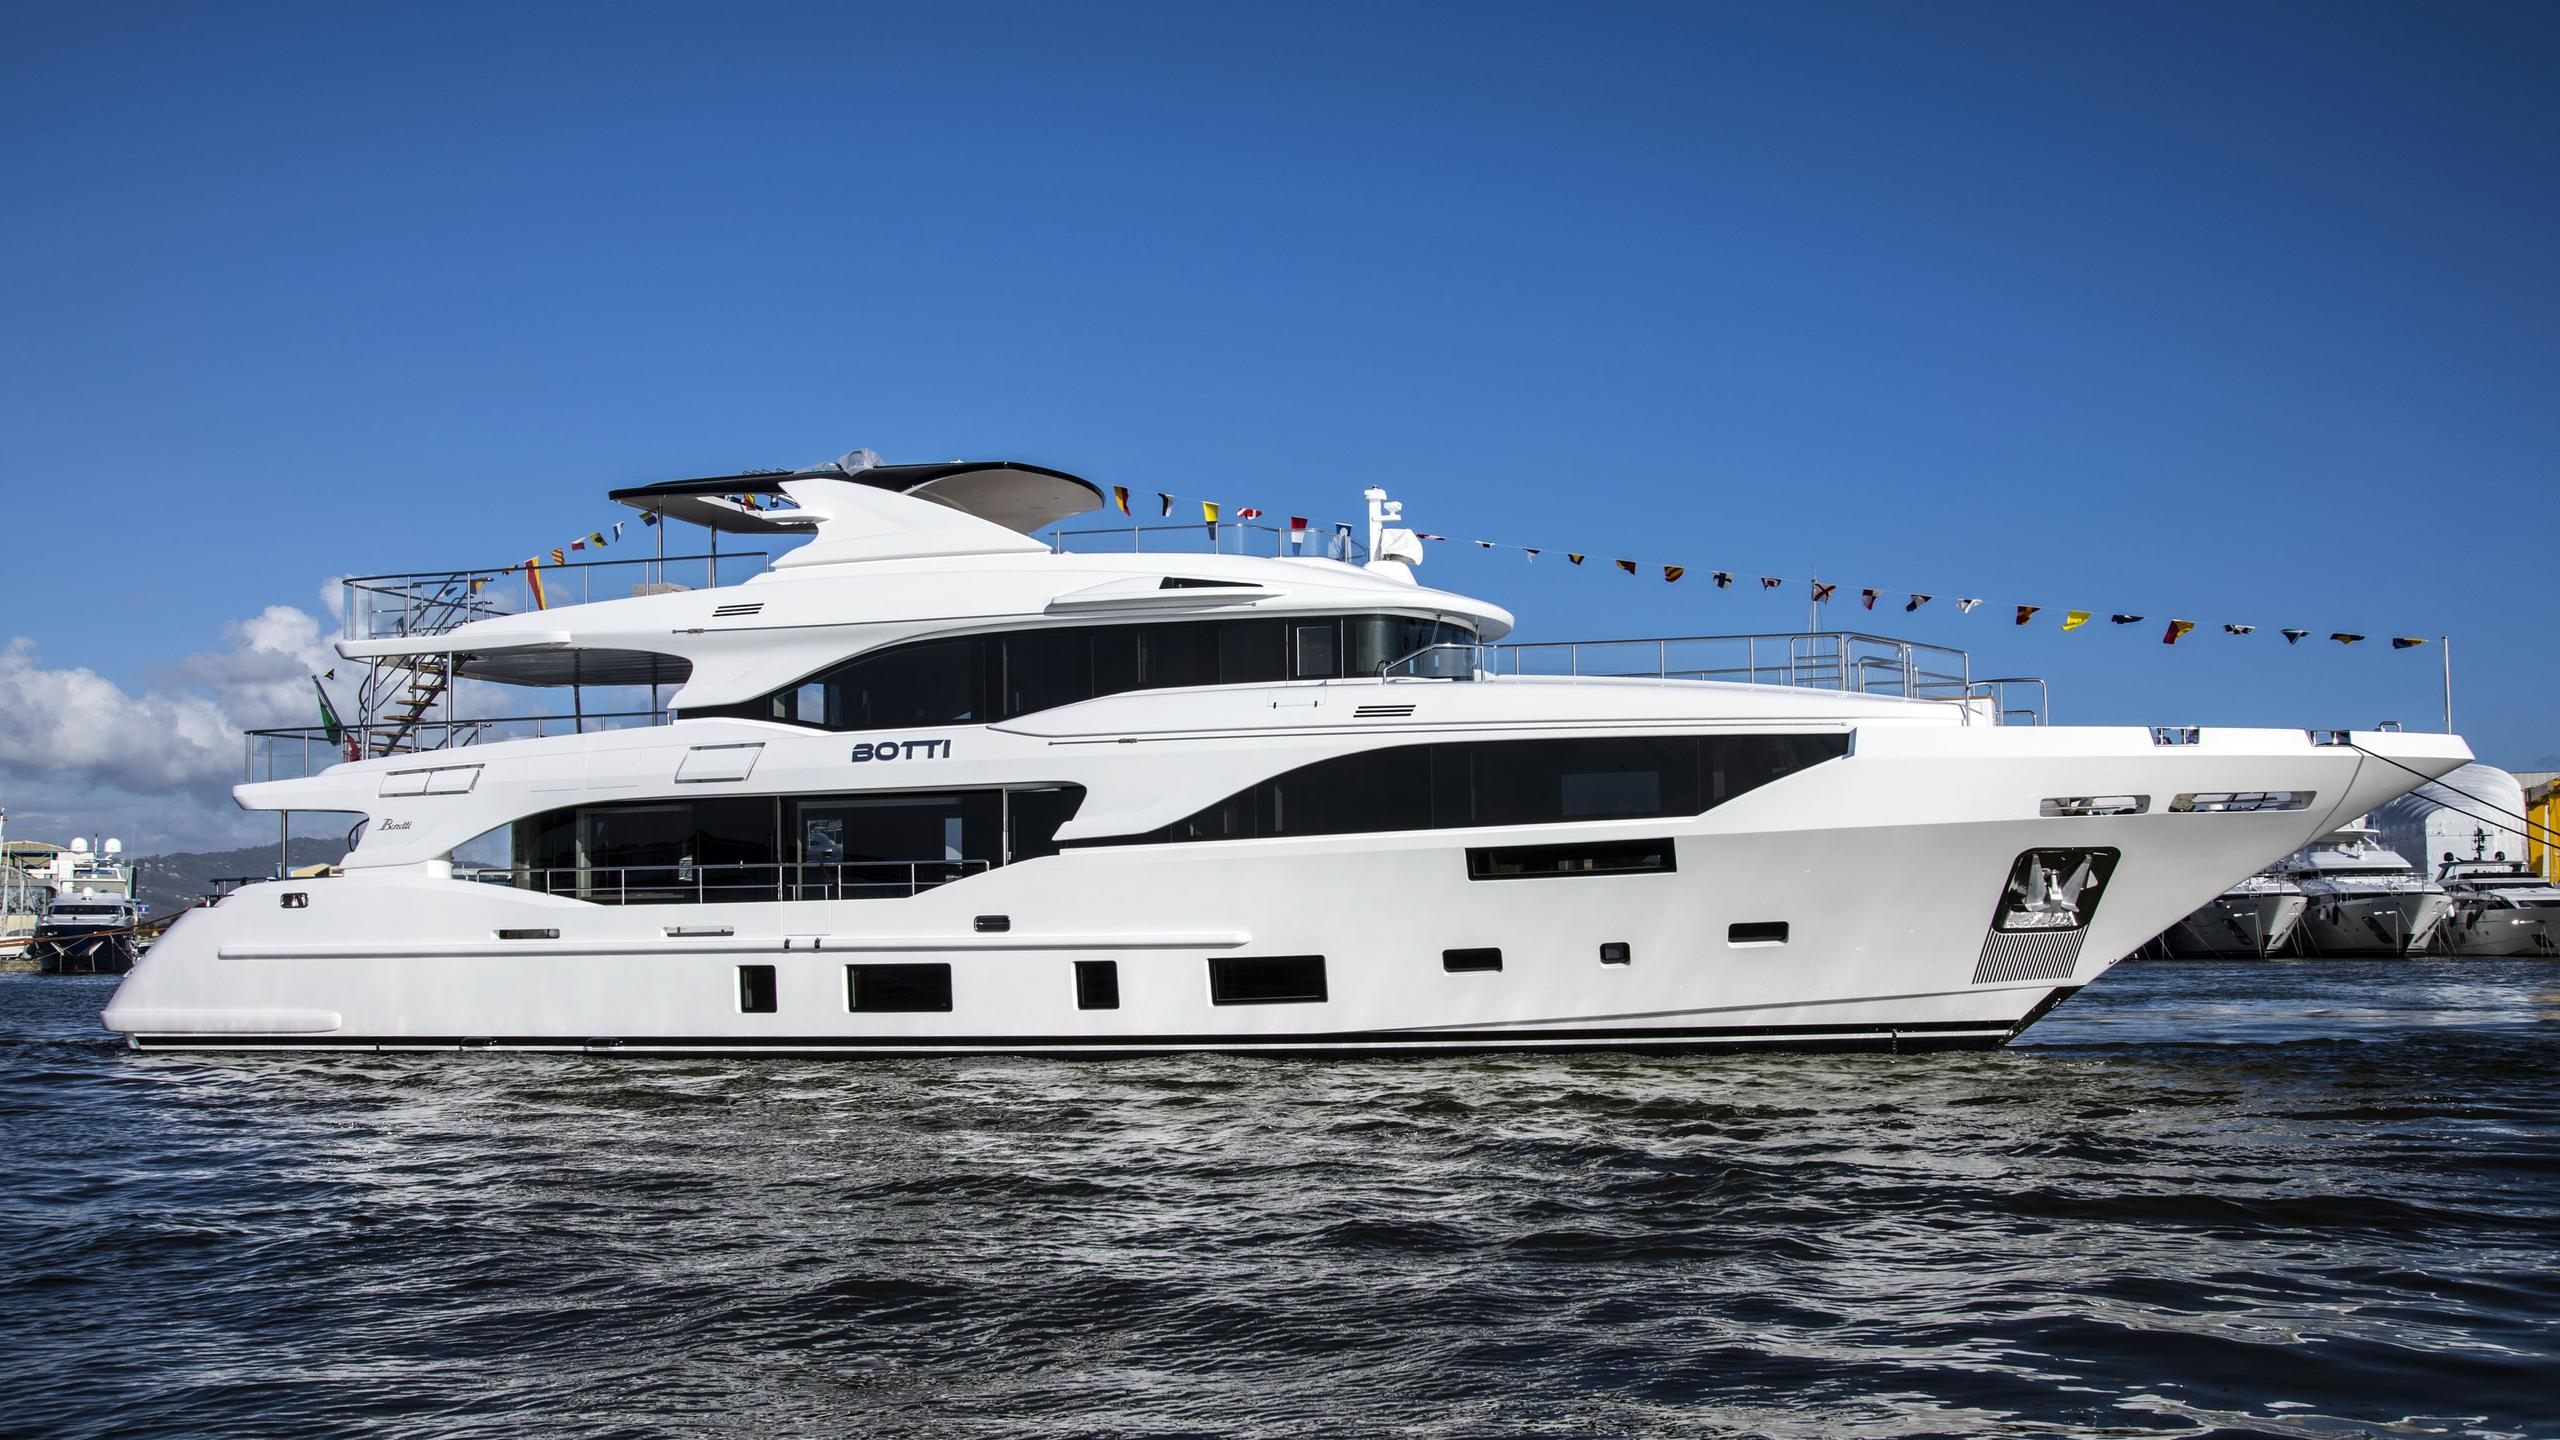 botti motoryacht benetti bm003 35m 2018 launch